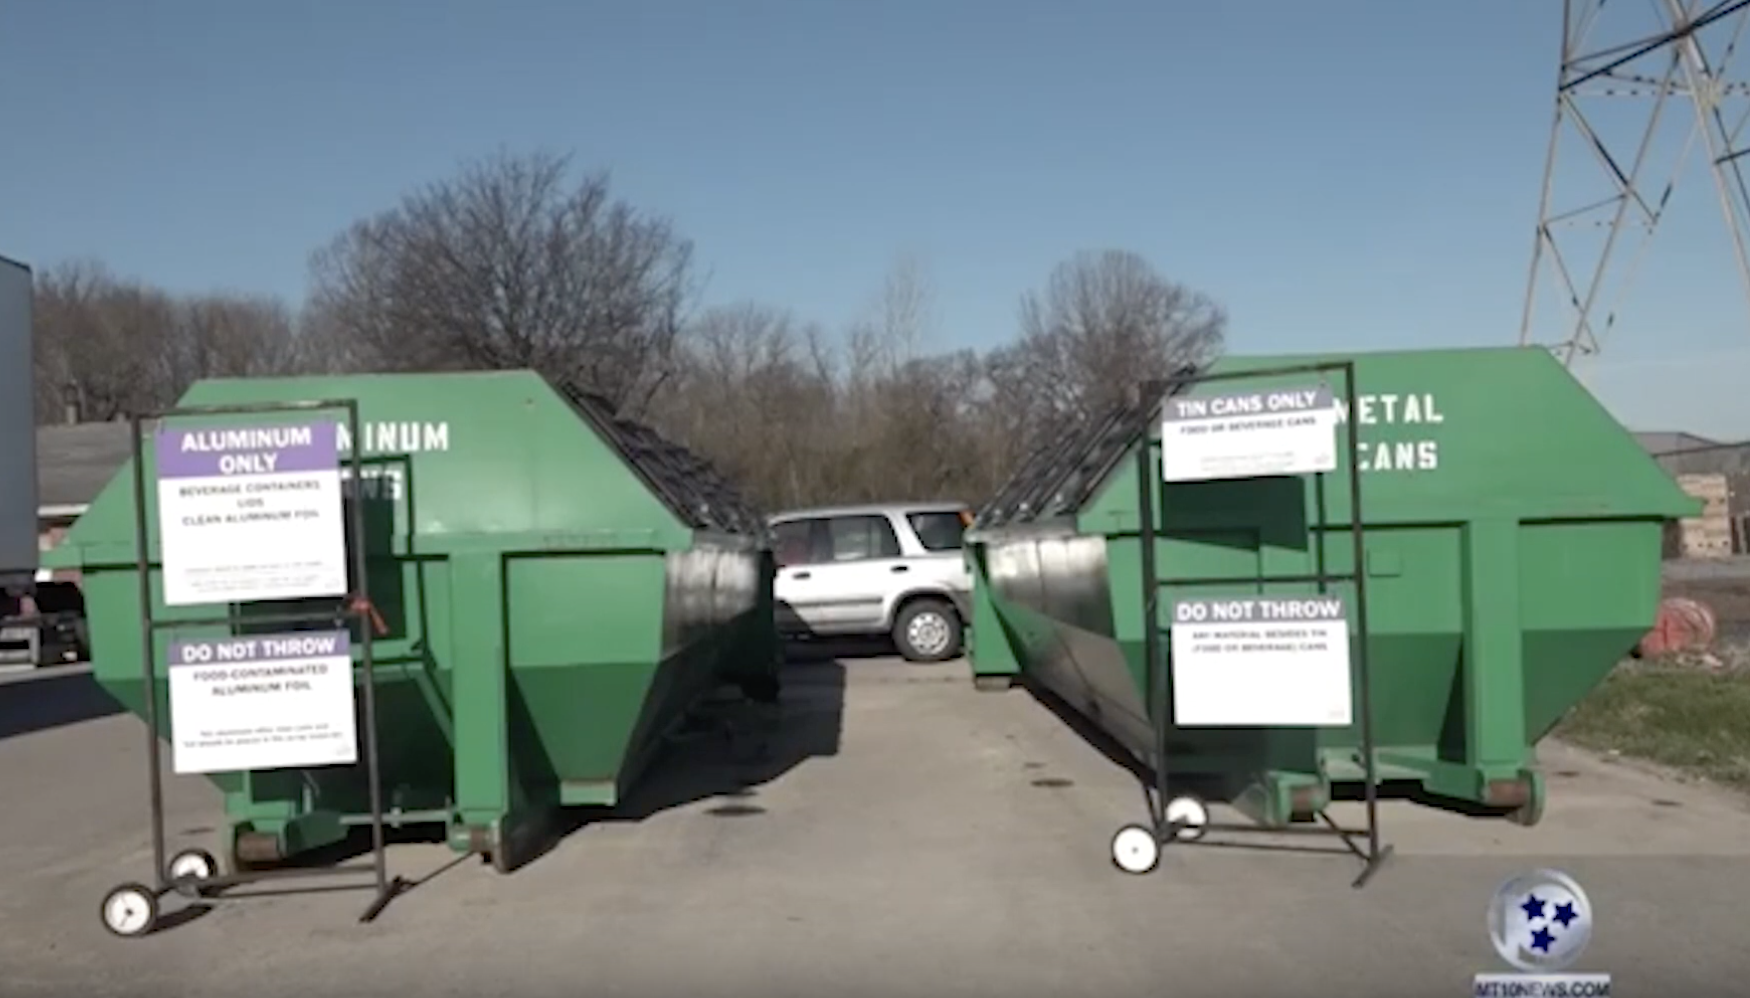 Murfreesboro Makes Plans to be Zero-Waste | Middle Tennessee